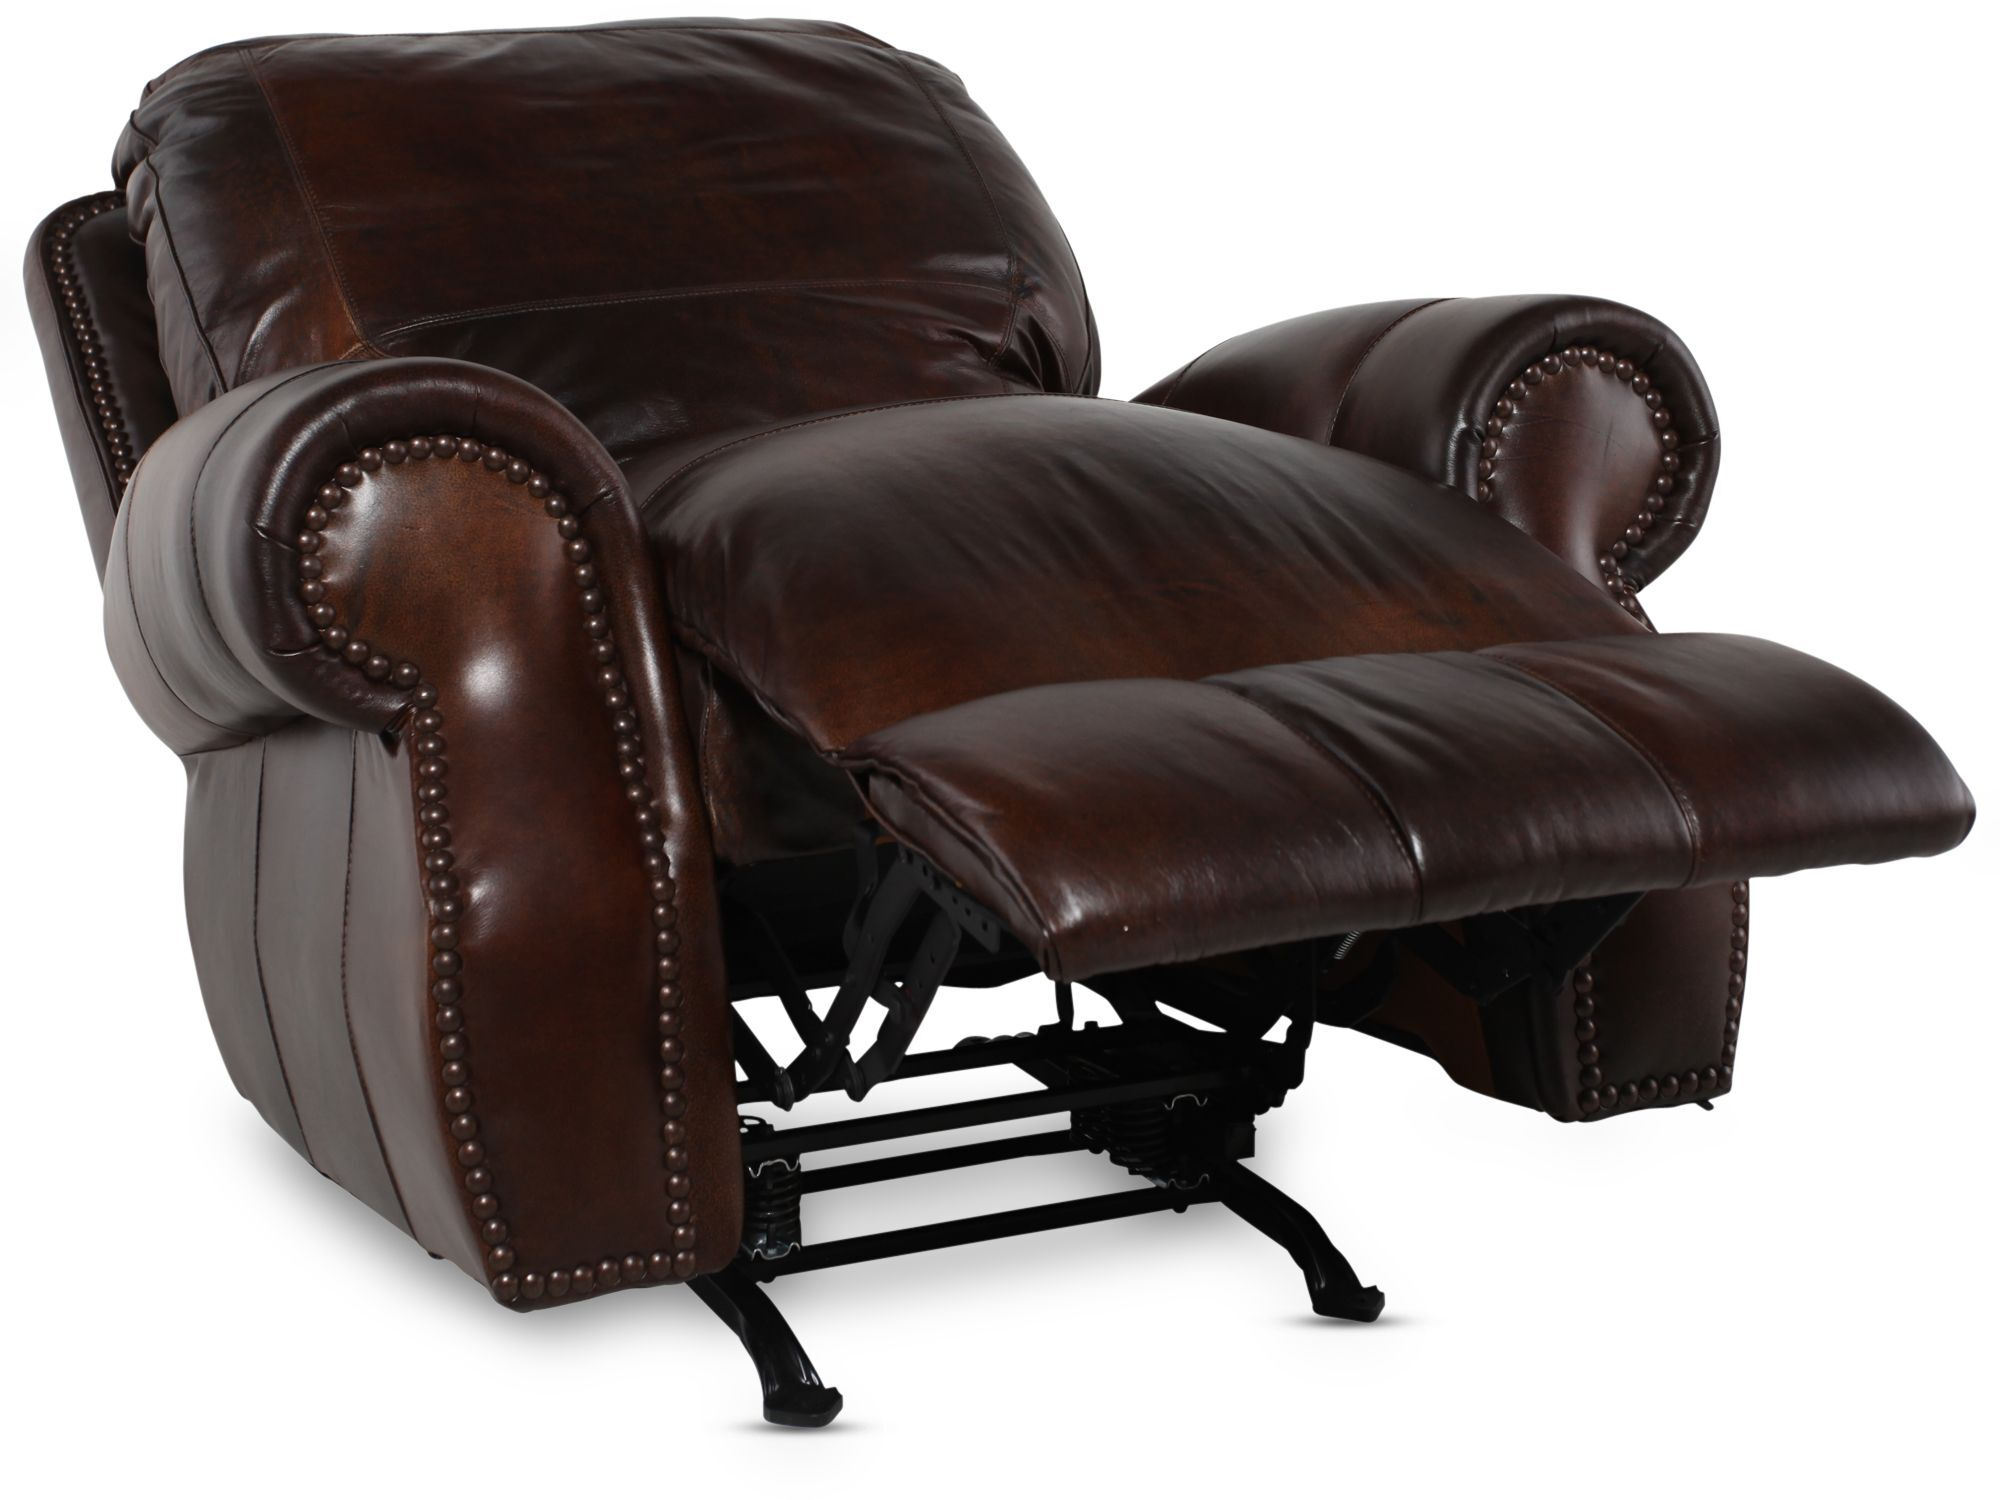 USA Leather Cowboy Rocker Recliner  sc 1 st  Mathis Brothers & USA Leather Cowboy Rocker Recliner | Mathis Brothers Furniture islam-shia.org